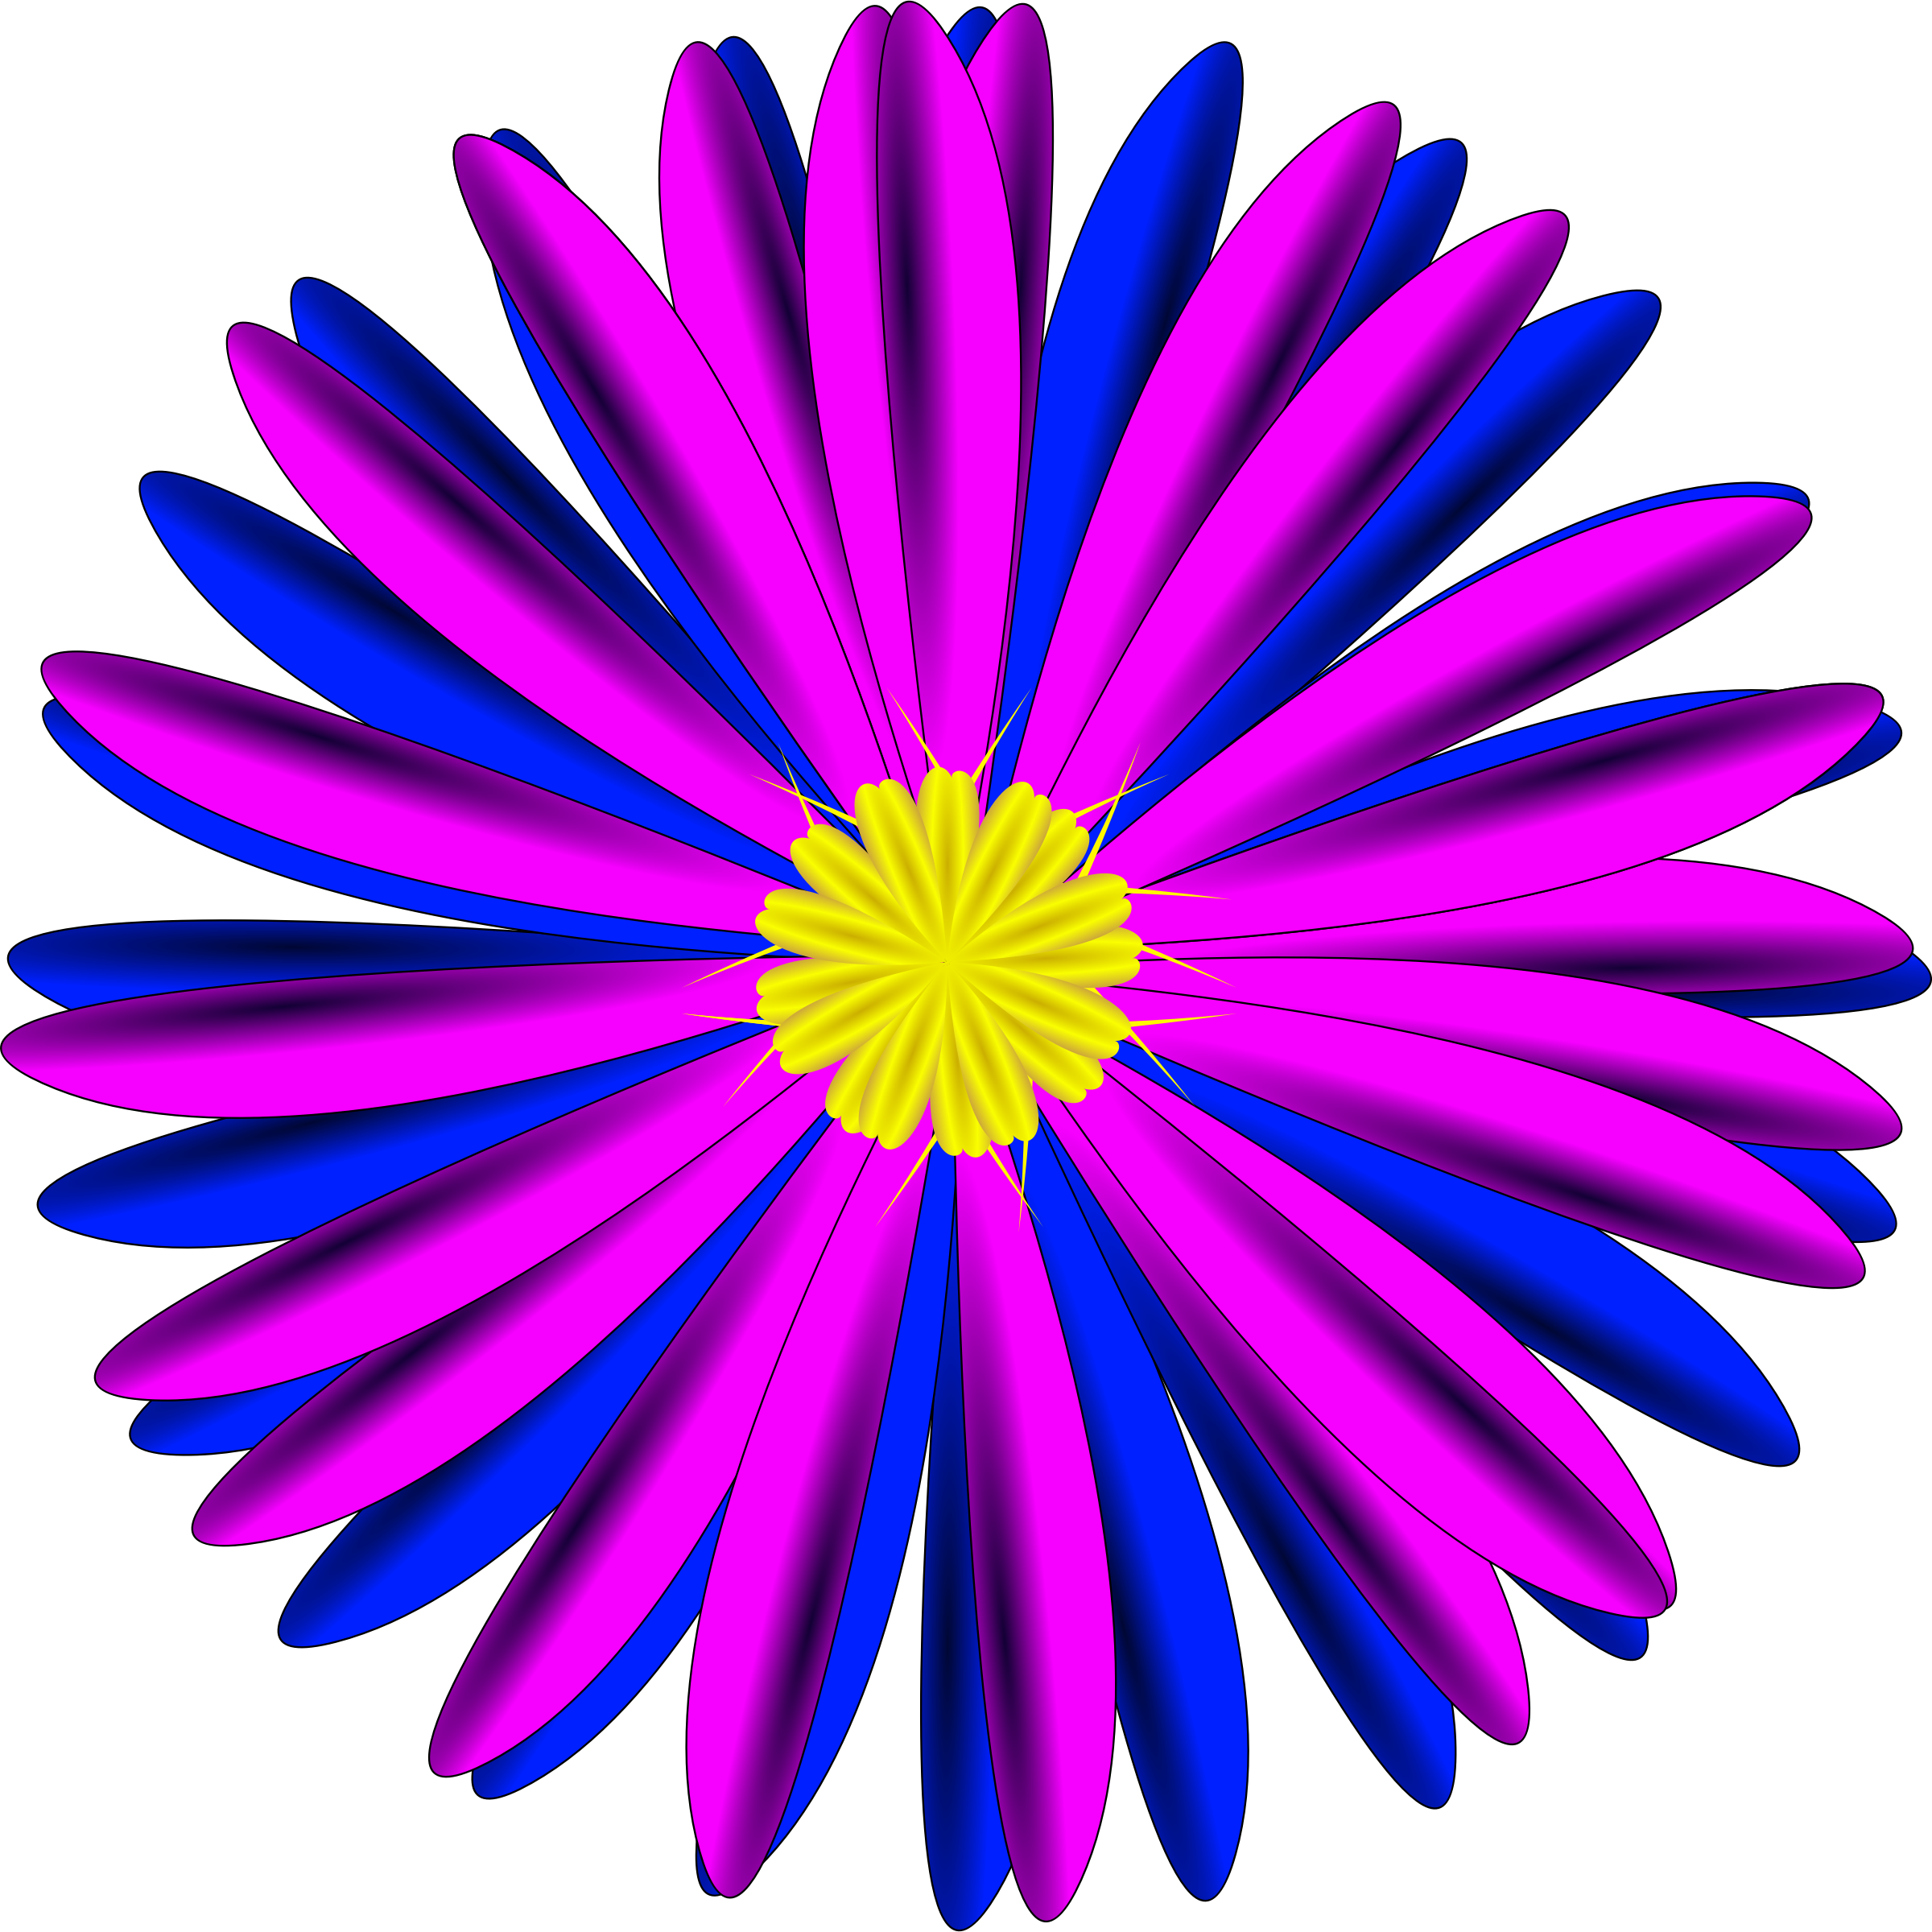 Blue Flower clipart pink flower Pink Pink and Blue Blue